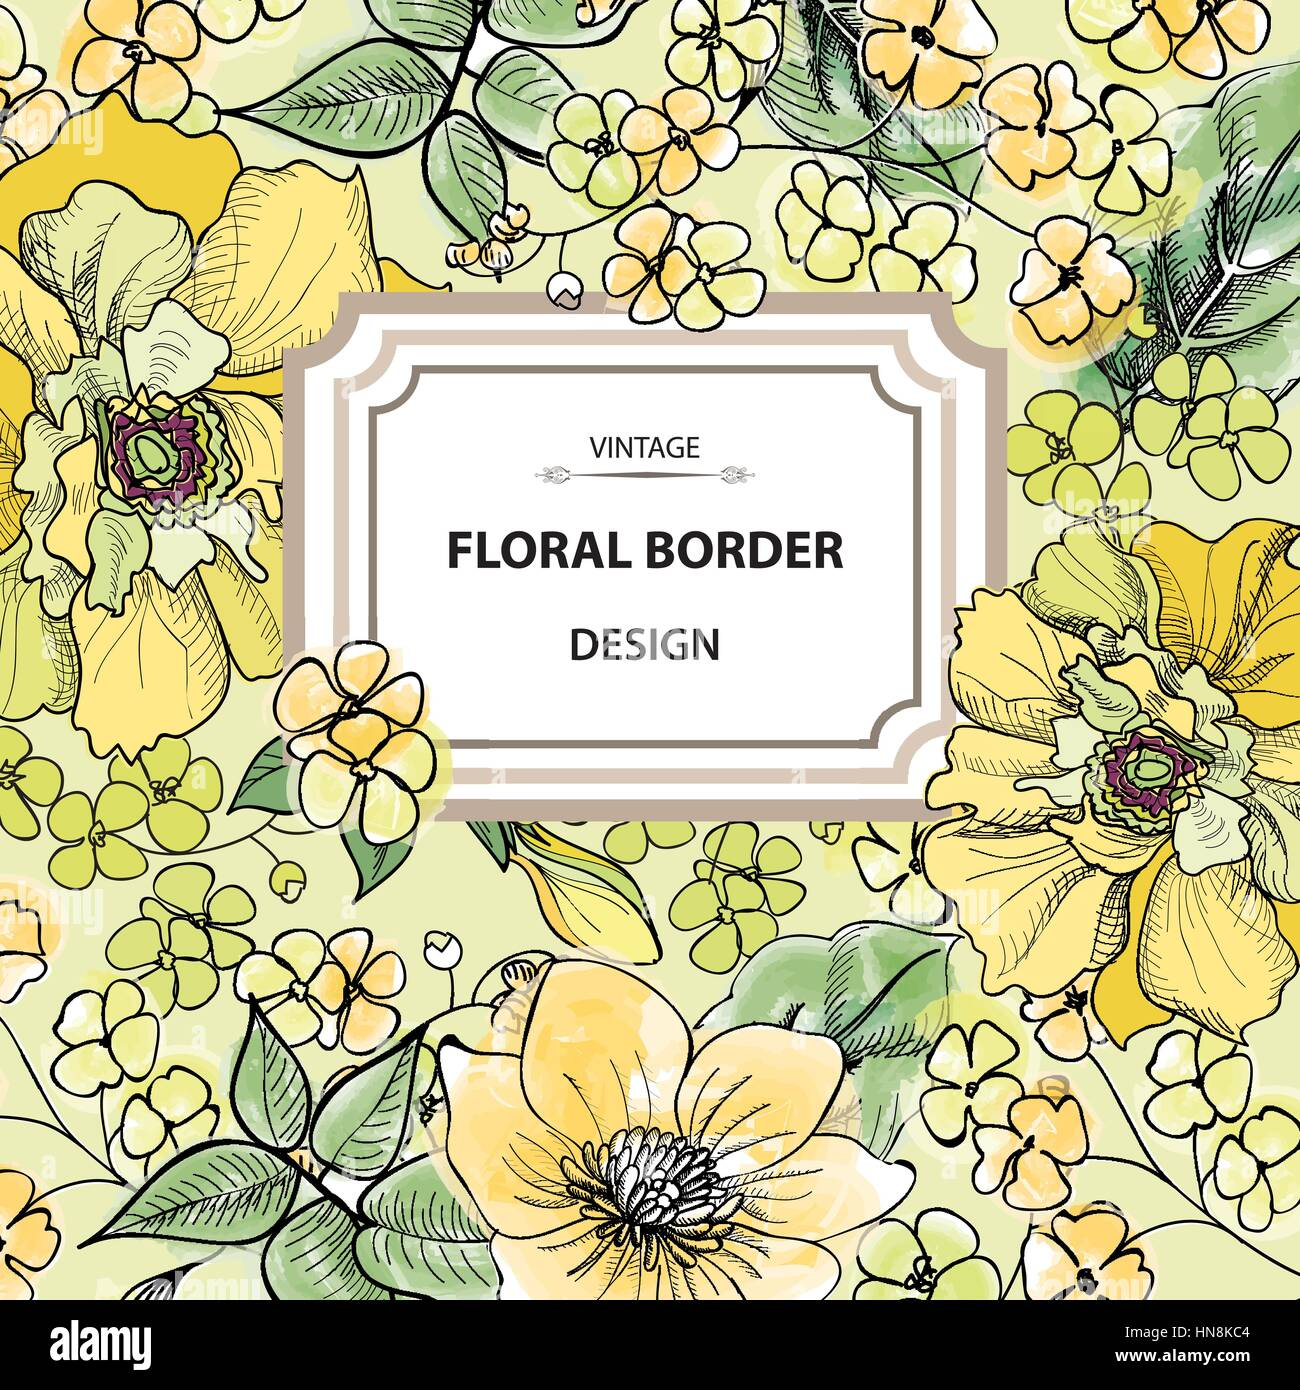 Floral Border Flower Background Vintage Flourish Spring Card Or